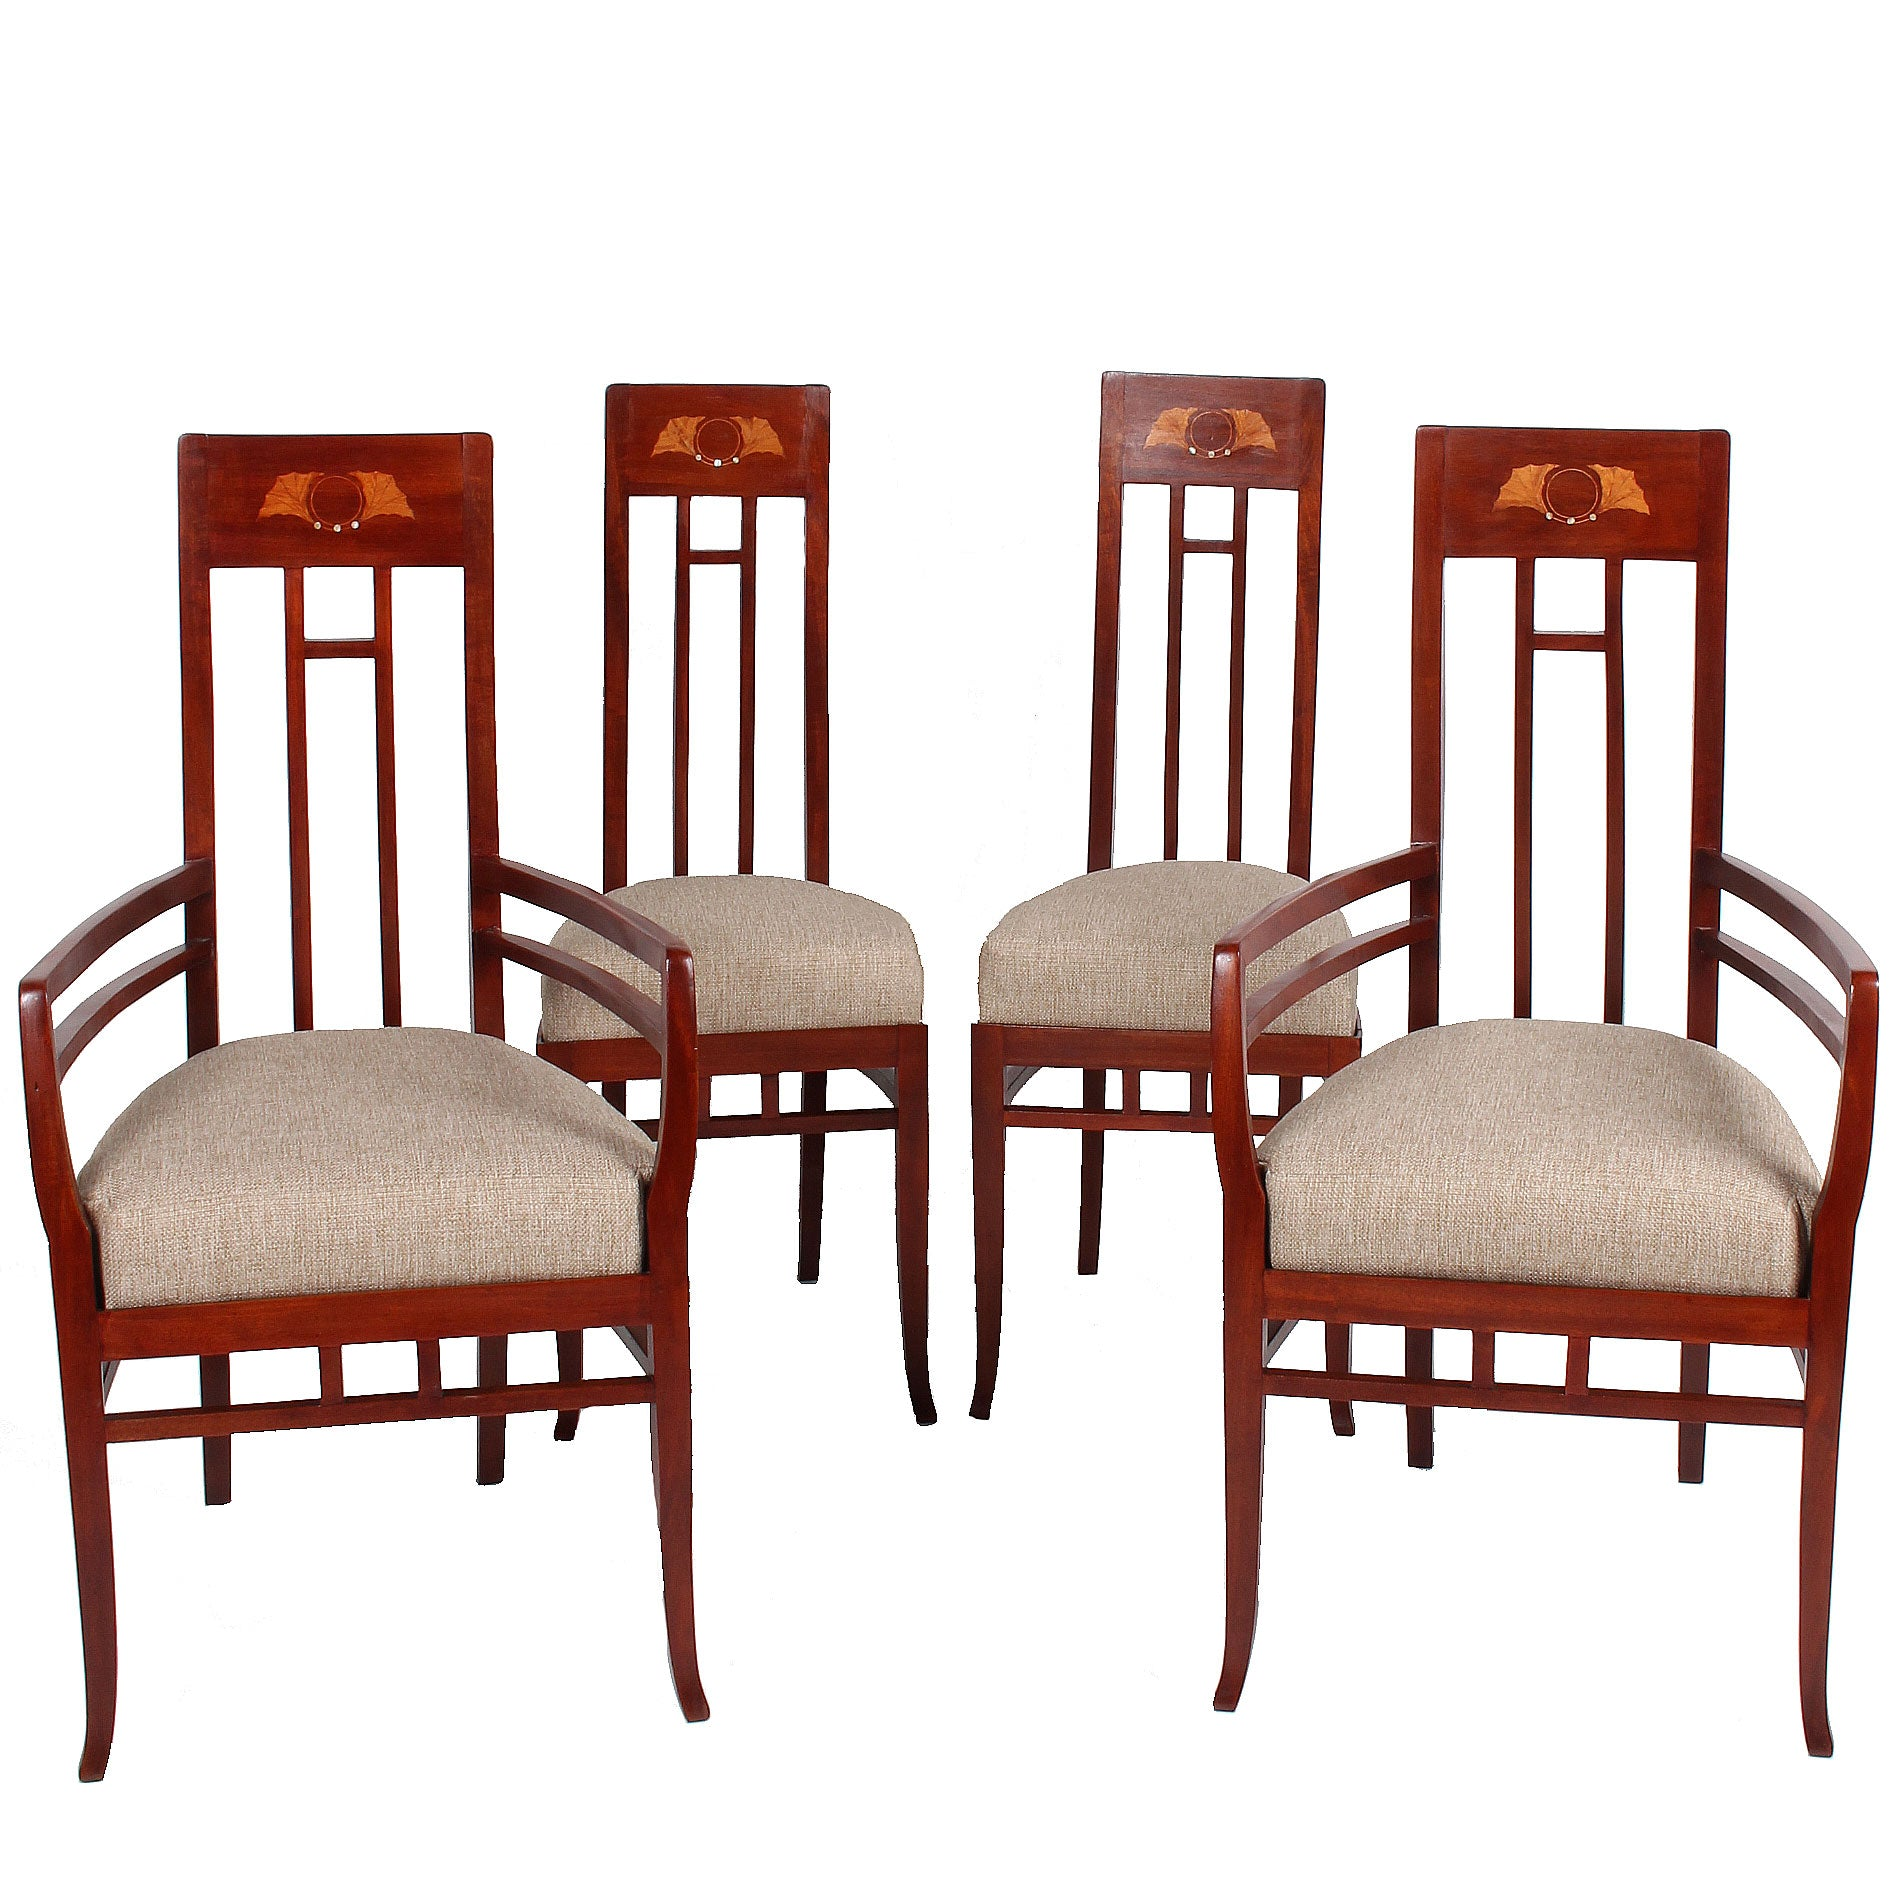 Italian Art Nouveau High Back Chairs Set Of 4 Fatto A Mano Antiques